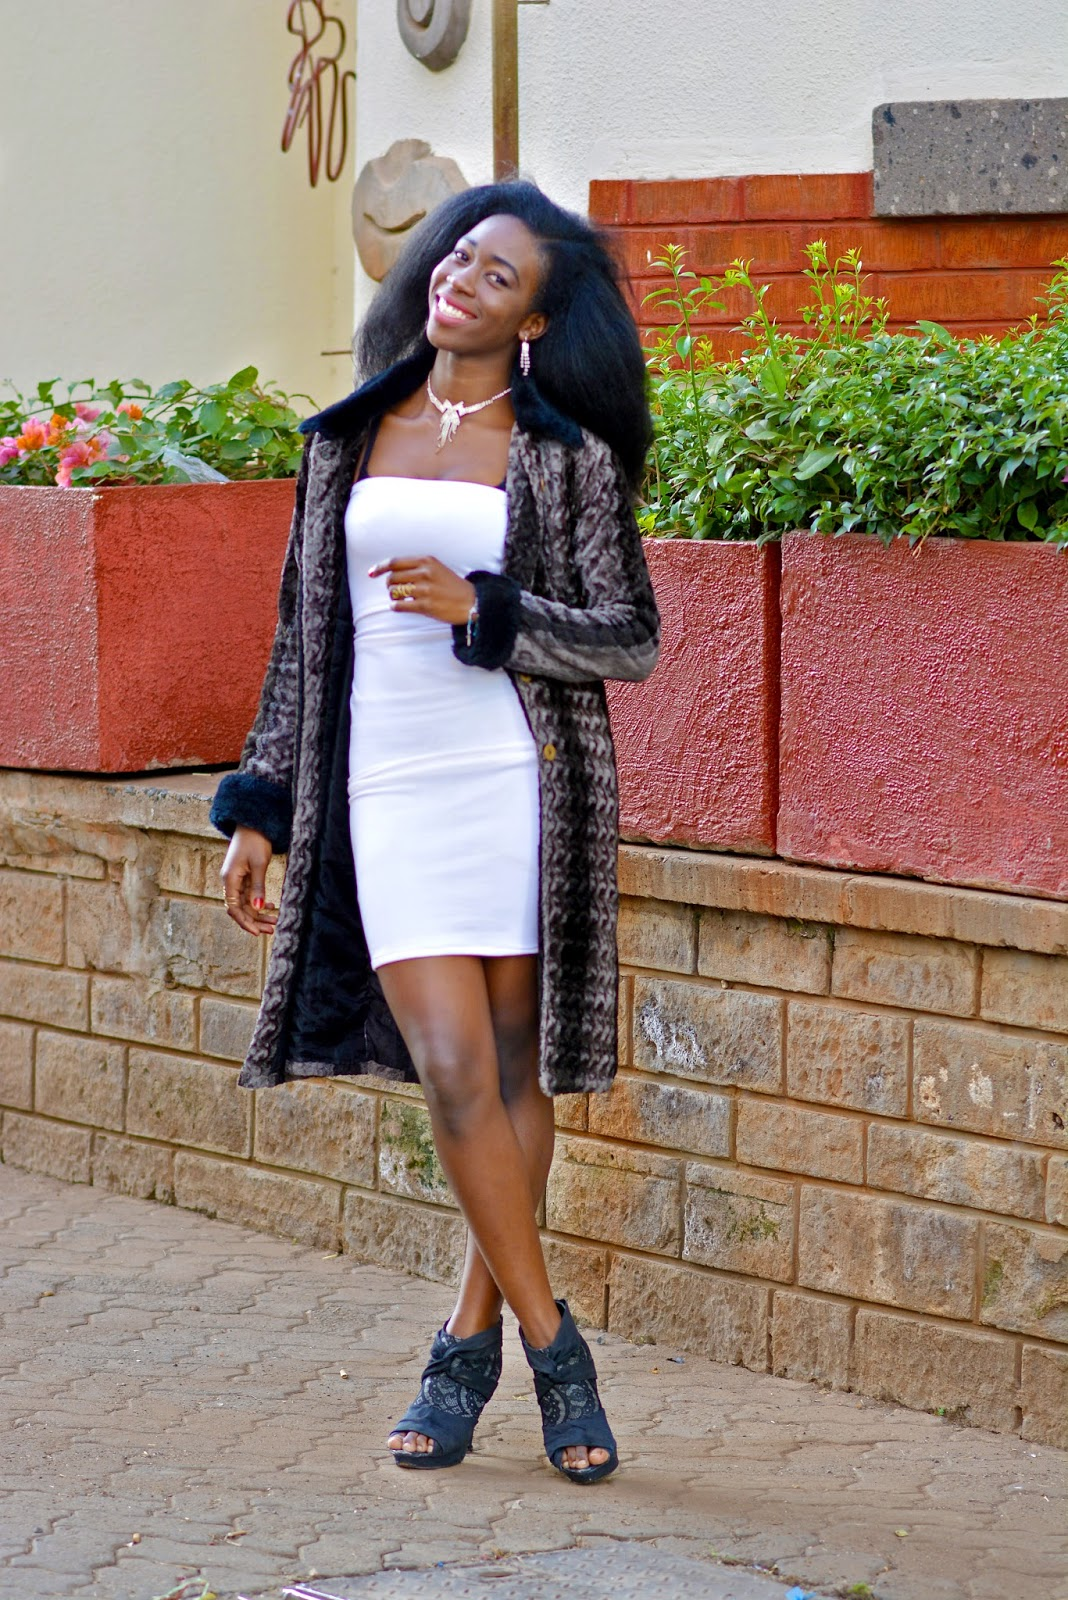 Style with Ezil, Ezil. Little white dress, how to wear a little white dress, fur coats, ankle boots, How to wear ankle boots with a dress, Simple dinner date outfit, simple elegant outfit, Kenyan fashion blogger, African Fashion blogger